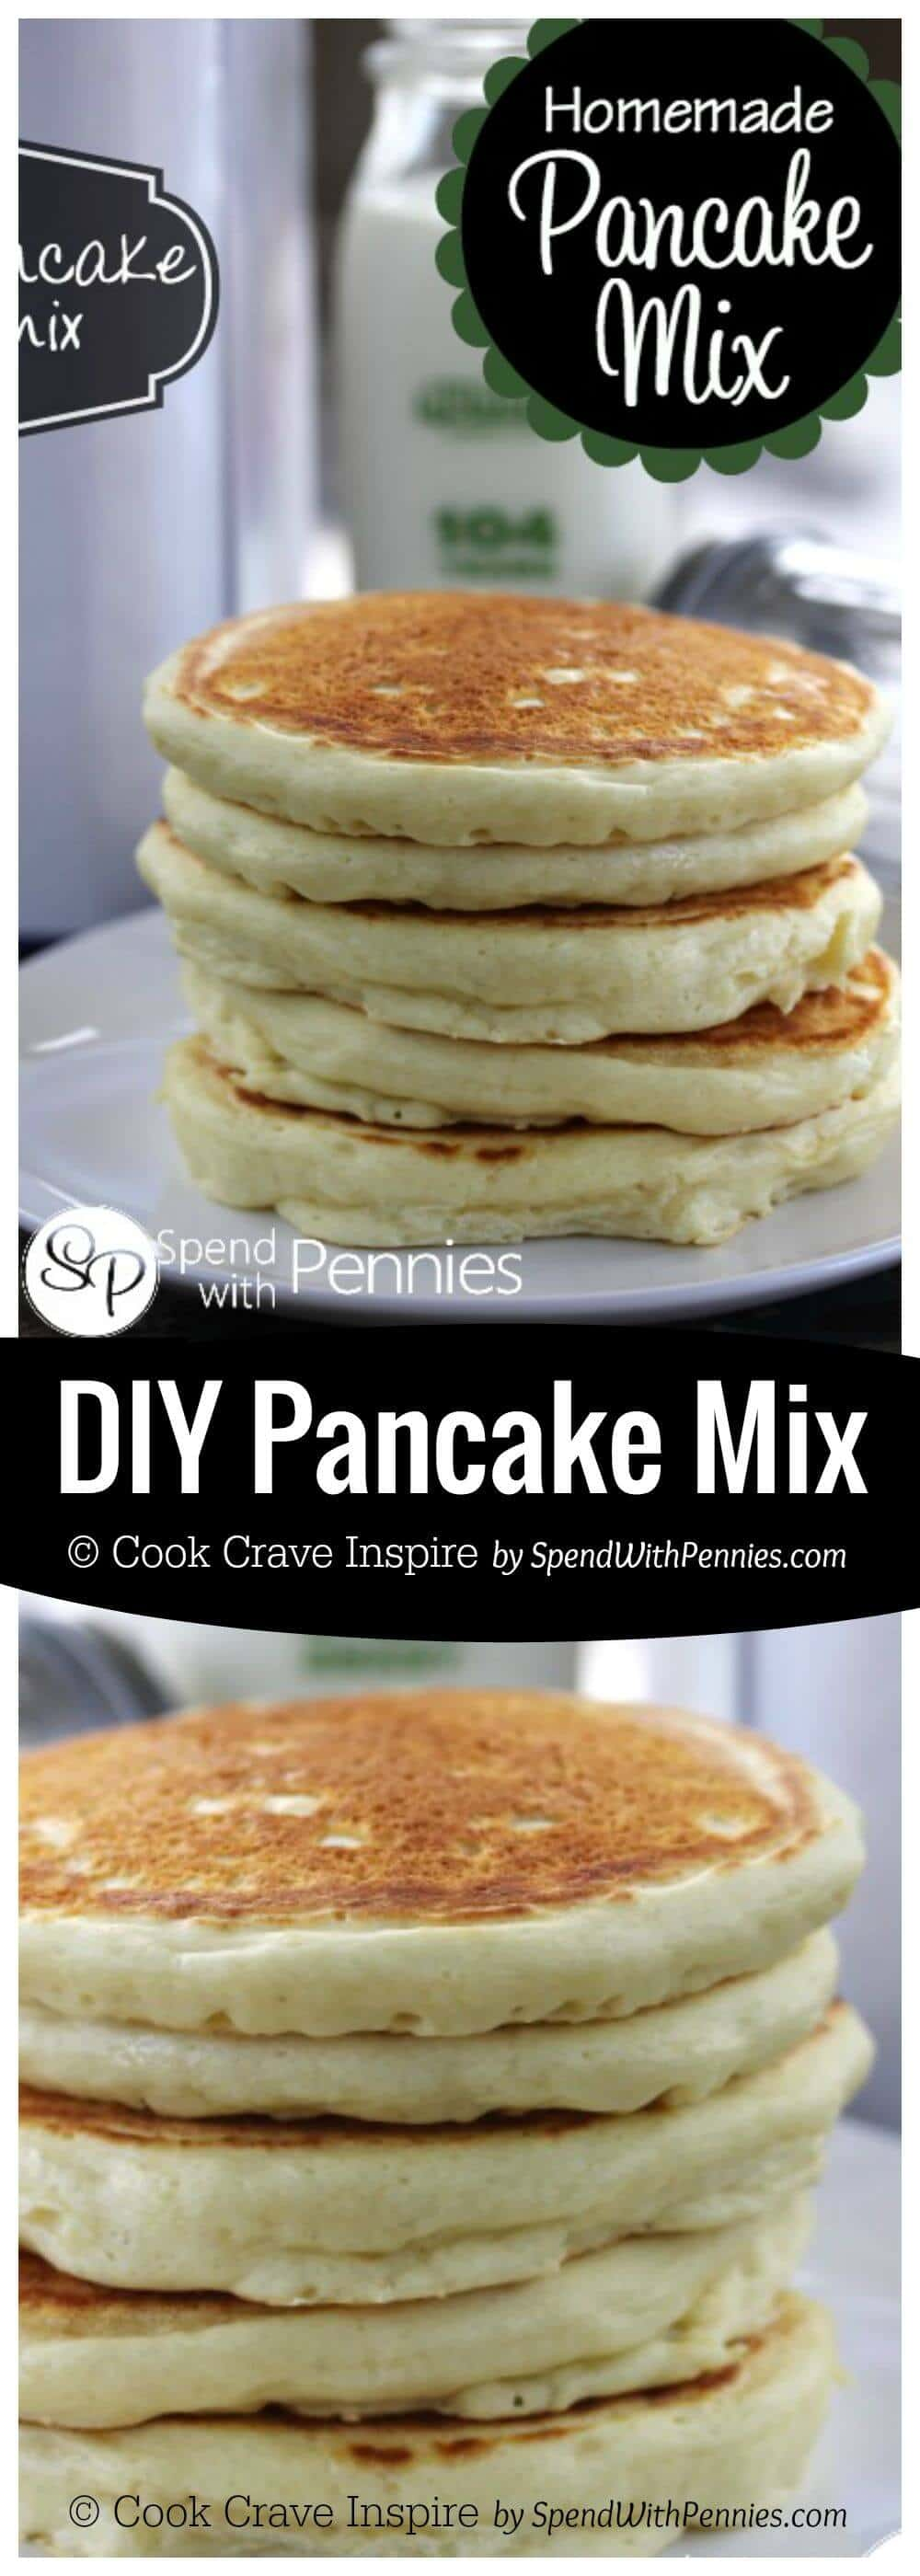 how to make one pancake with mix